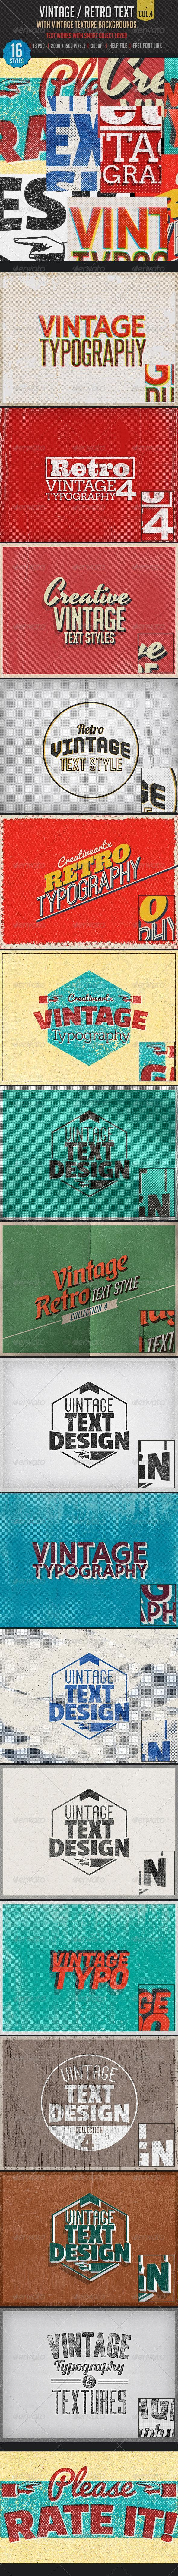 Vintage Typography in Photoshop